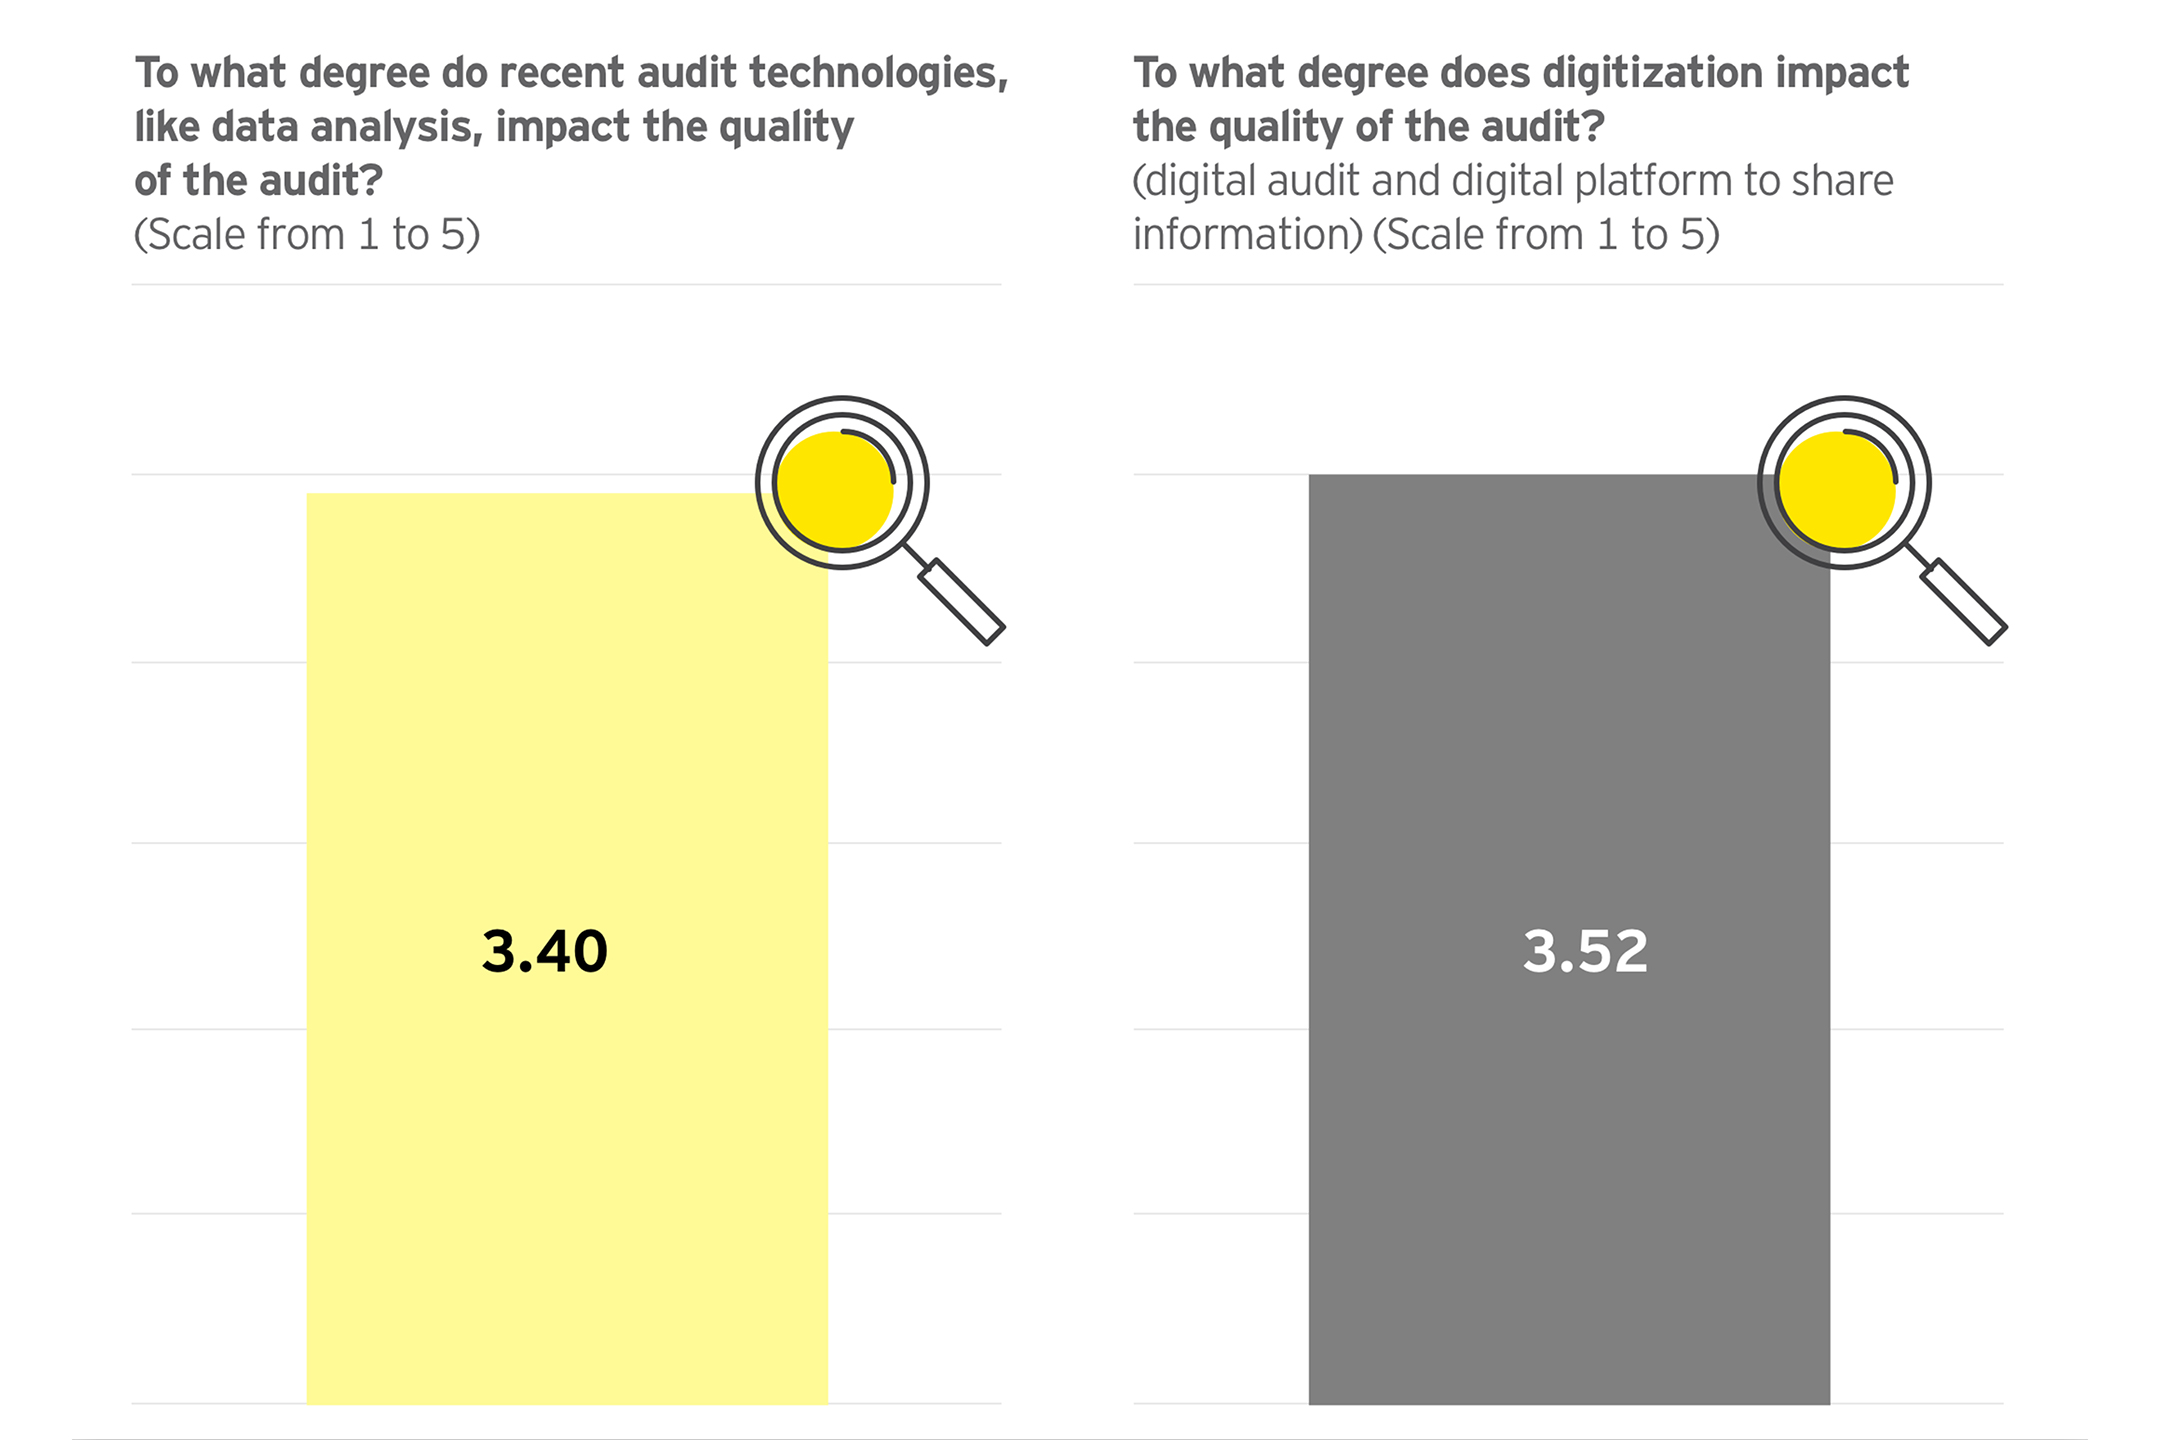 Graph: To what degree doe recent audit technologies impact the quality of the audit? [Answer: 3.40, Scale from 1 to 5]; To what degree deos digitalization impact the quality of the audit? [Answer: 3.52, Scale from 1 to 5]